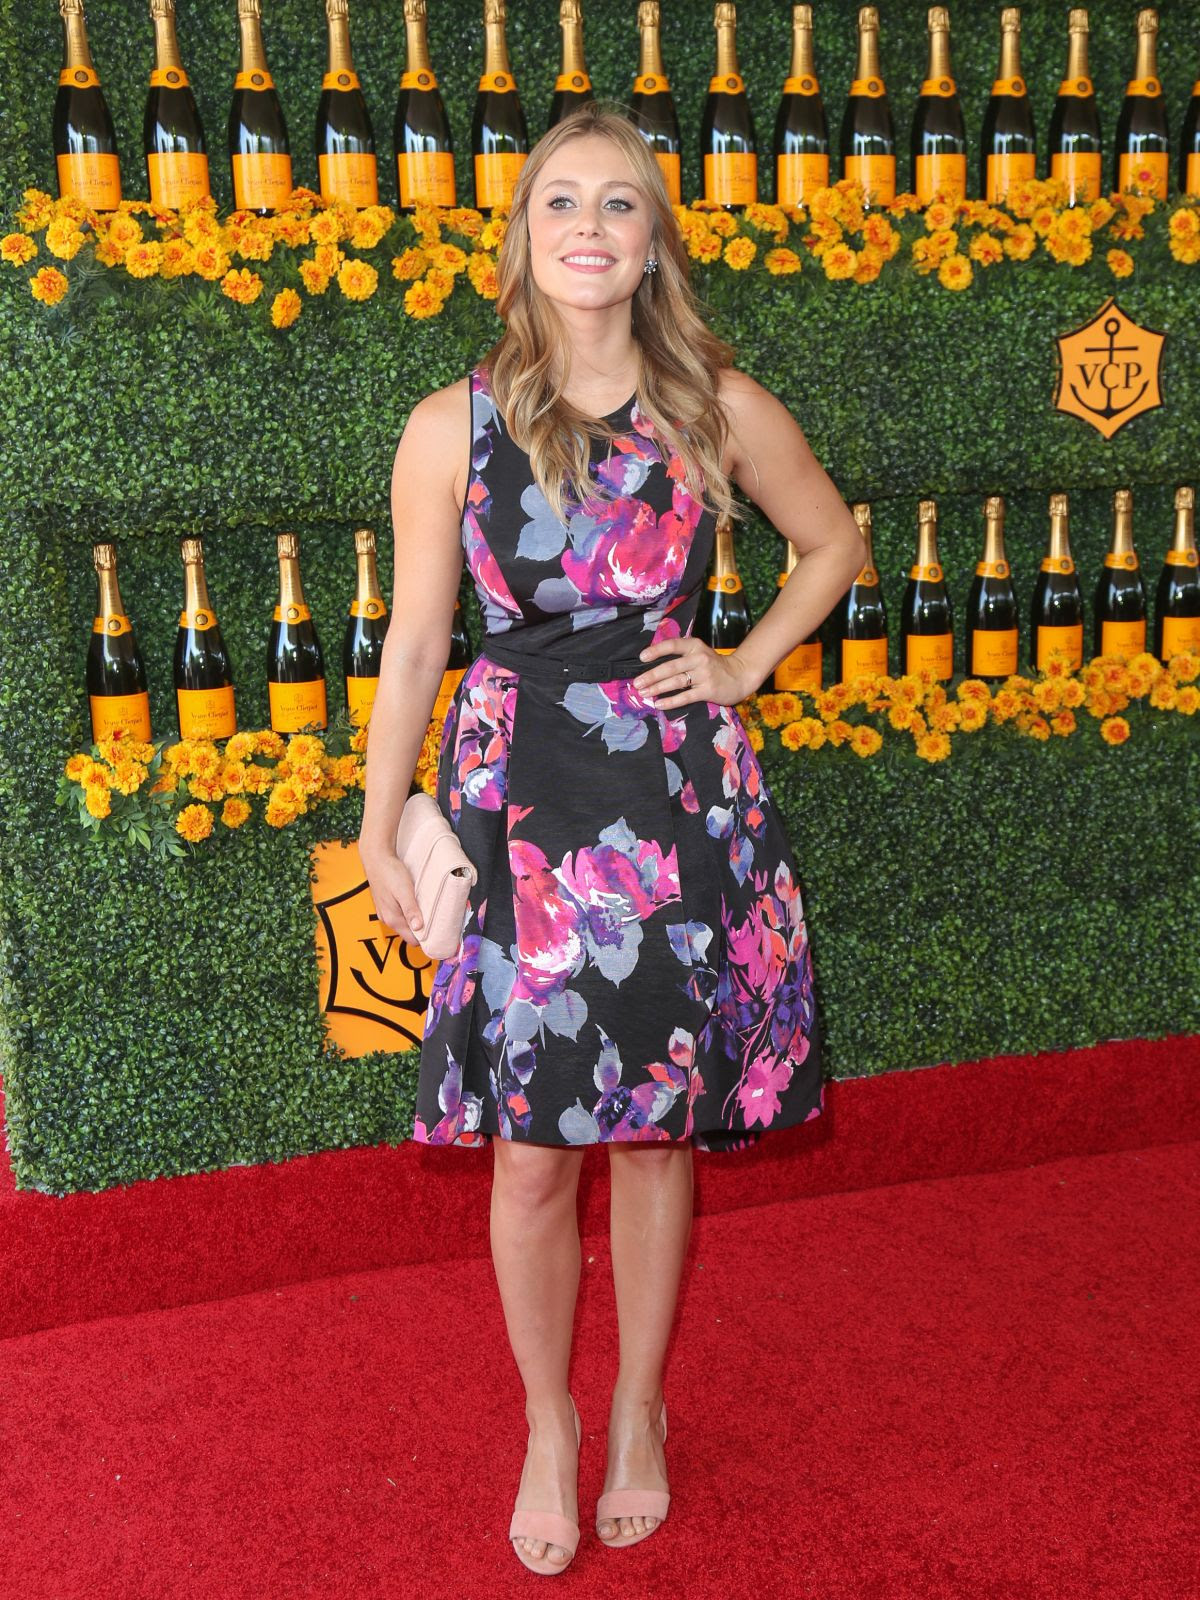 JULIANNA GUILL at 2015 Veuve Clicquot Polo Classic in Pacific Palisades 10/17/2015